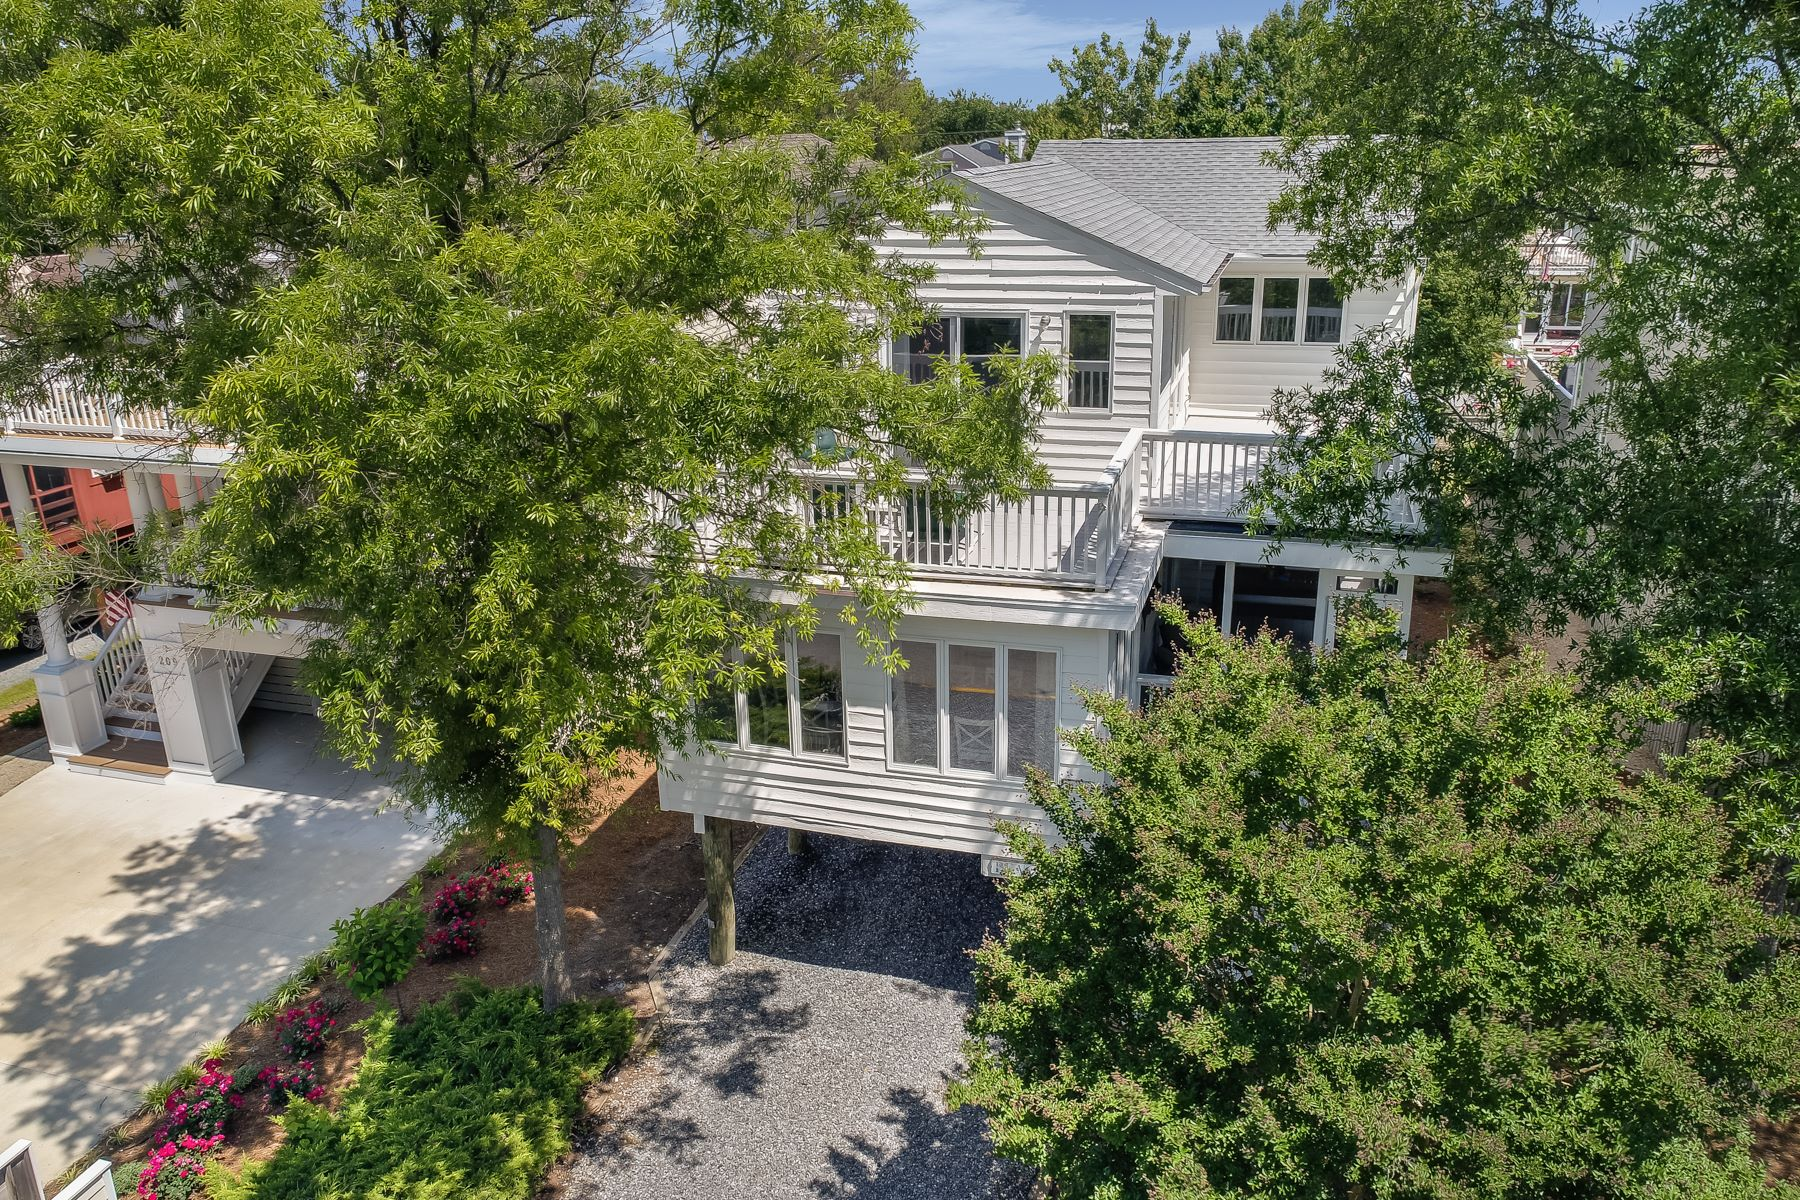 Single Family Home for Sale at 207 Wellington Parkway 207 Wellington Parkway Bethany Beach, Delaware 19930 United States